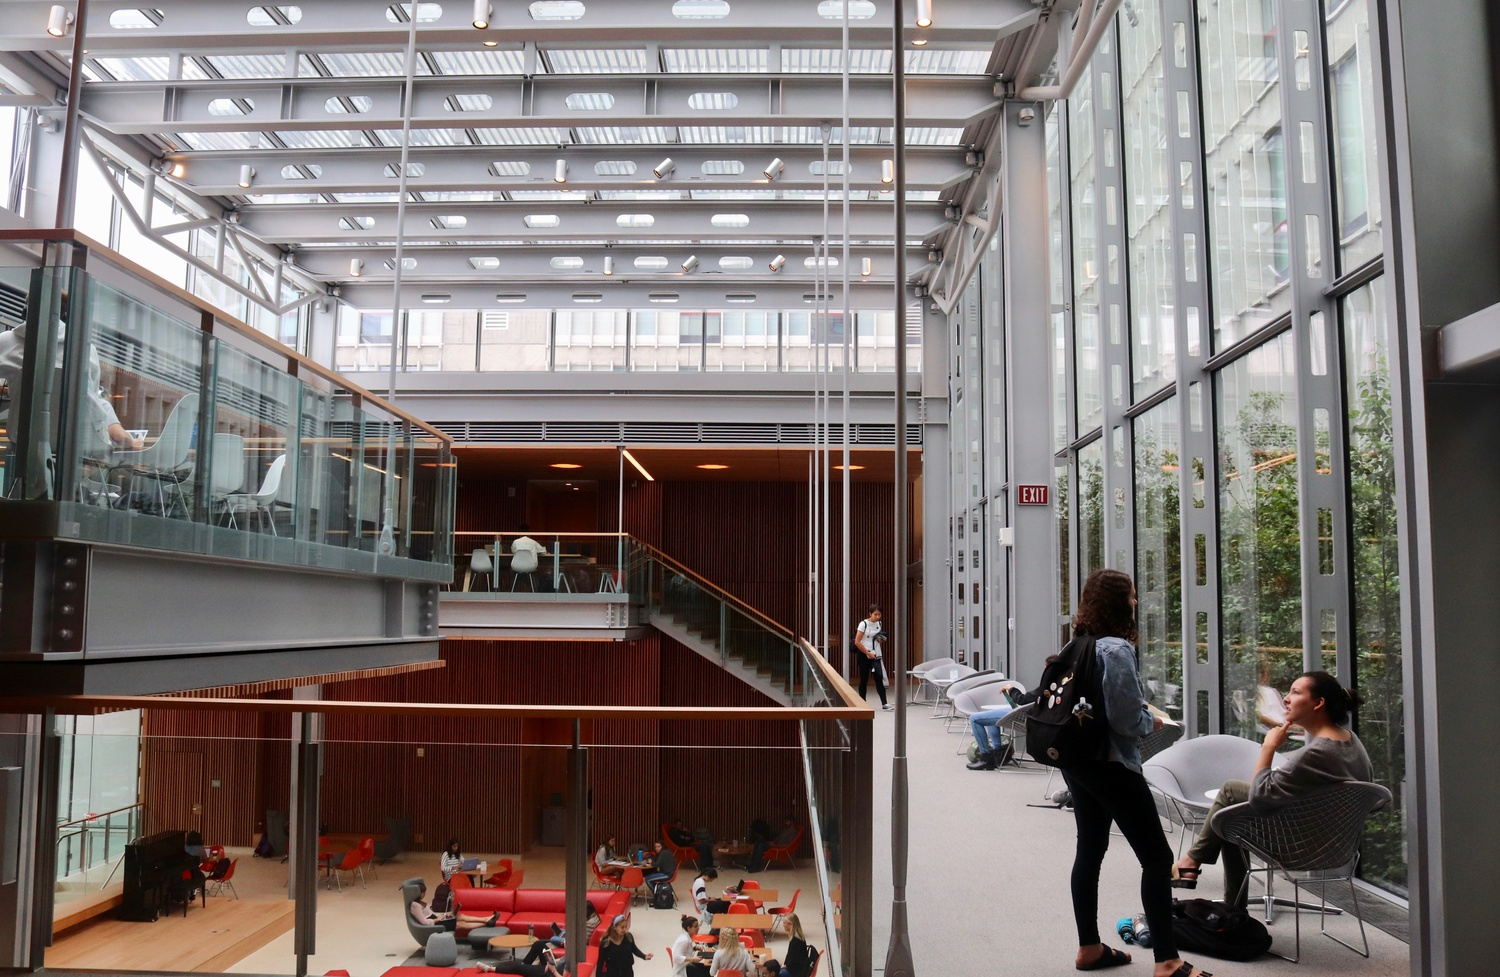 The common area of Smith Campus Center where the students of Harvard College gather.